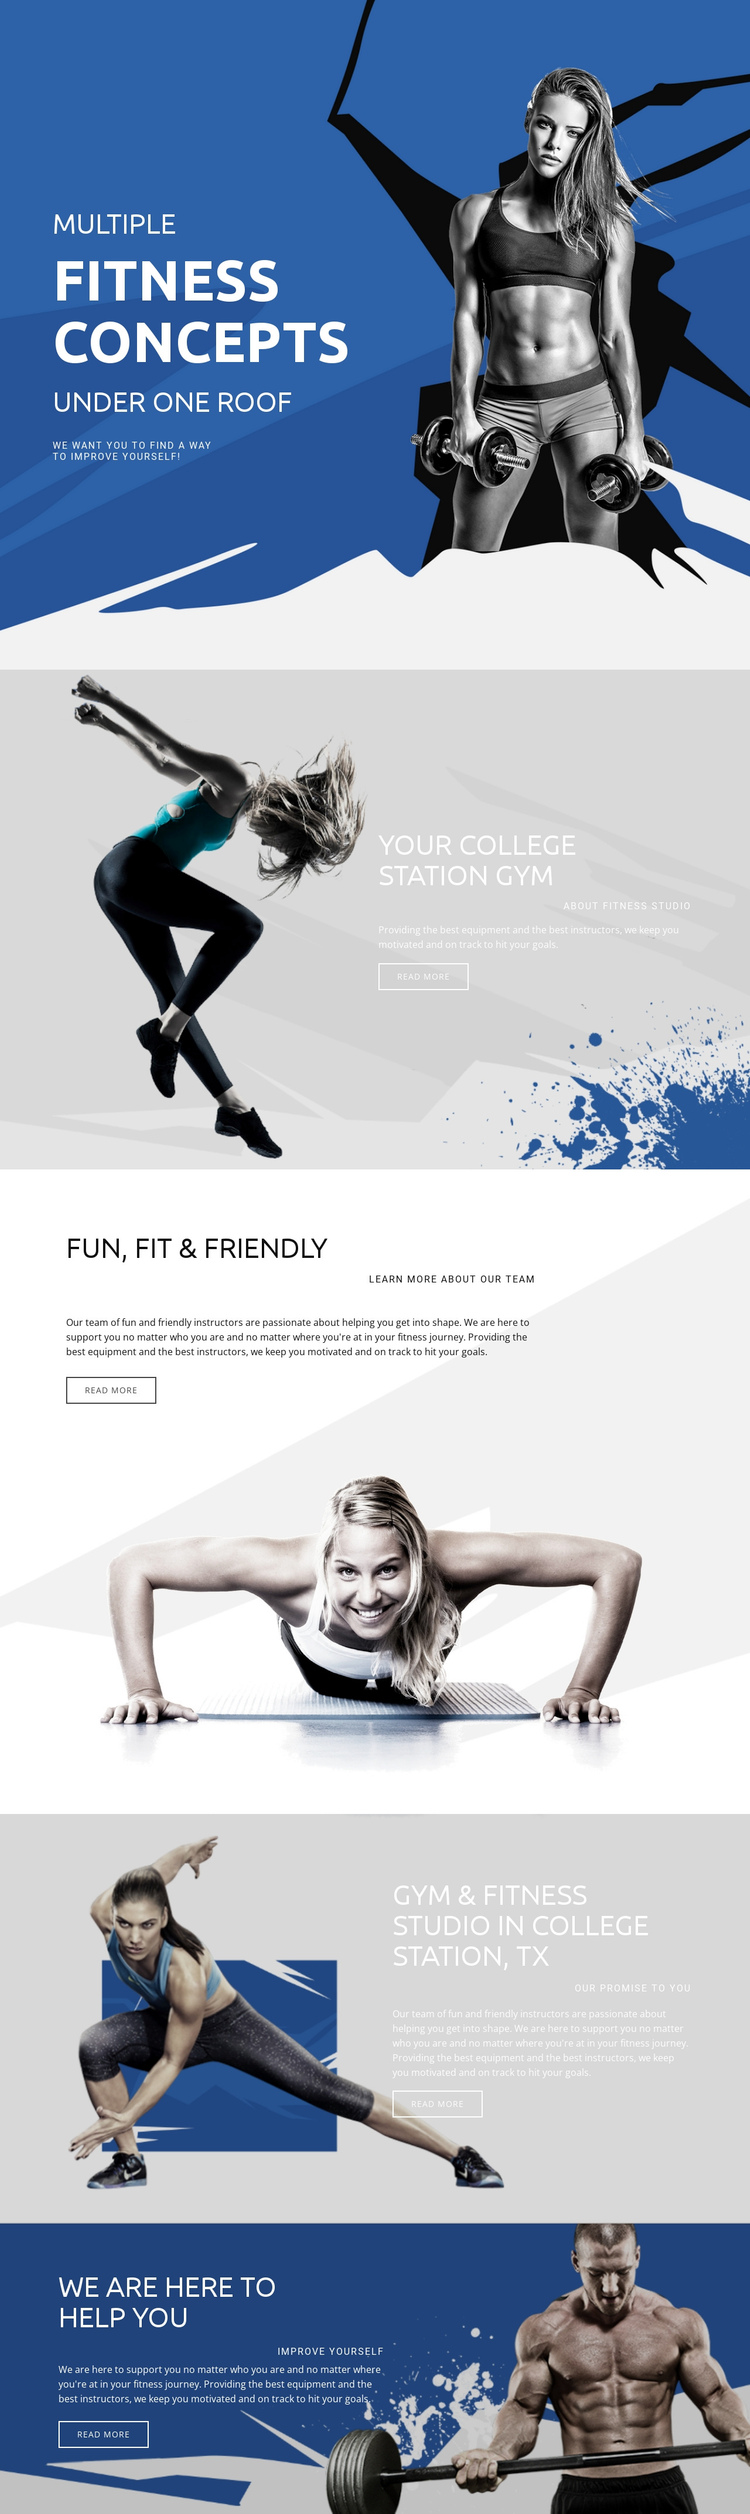 Best fitness and sports Website Builder Software